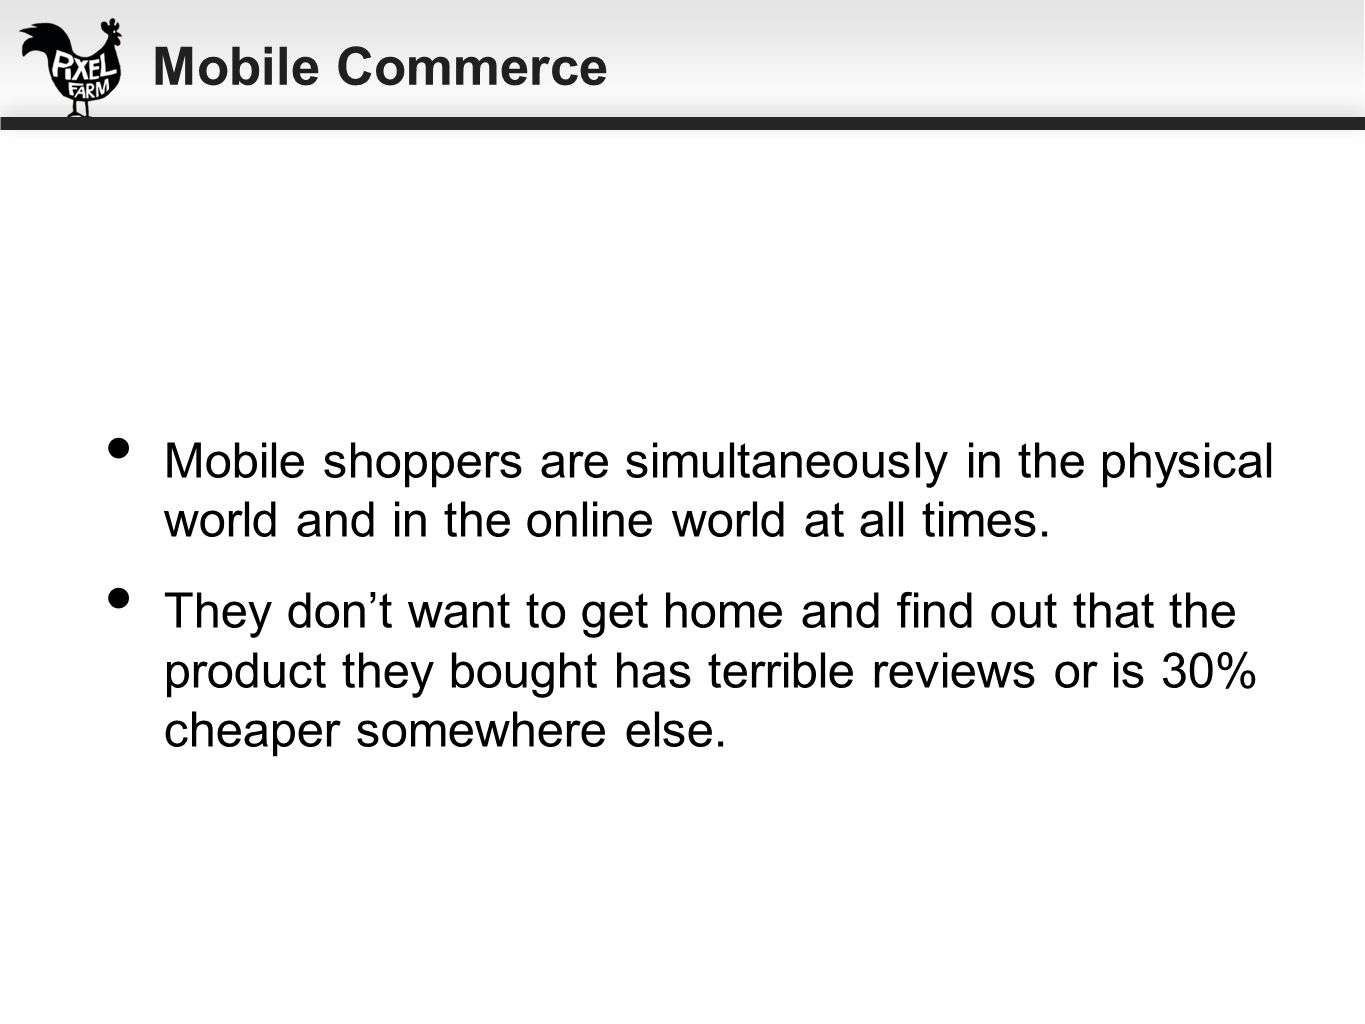 Mobile CommerceMobile shoppers are simultaneously in the physical world and in the online world at all times.